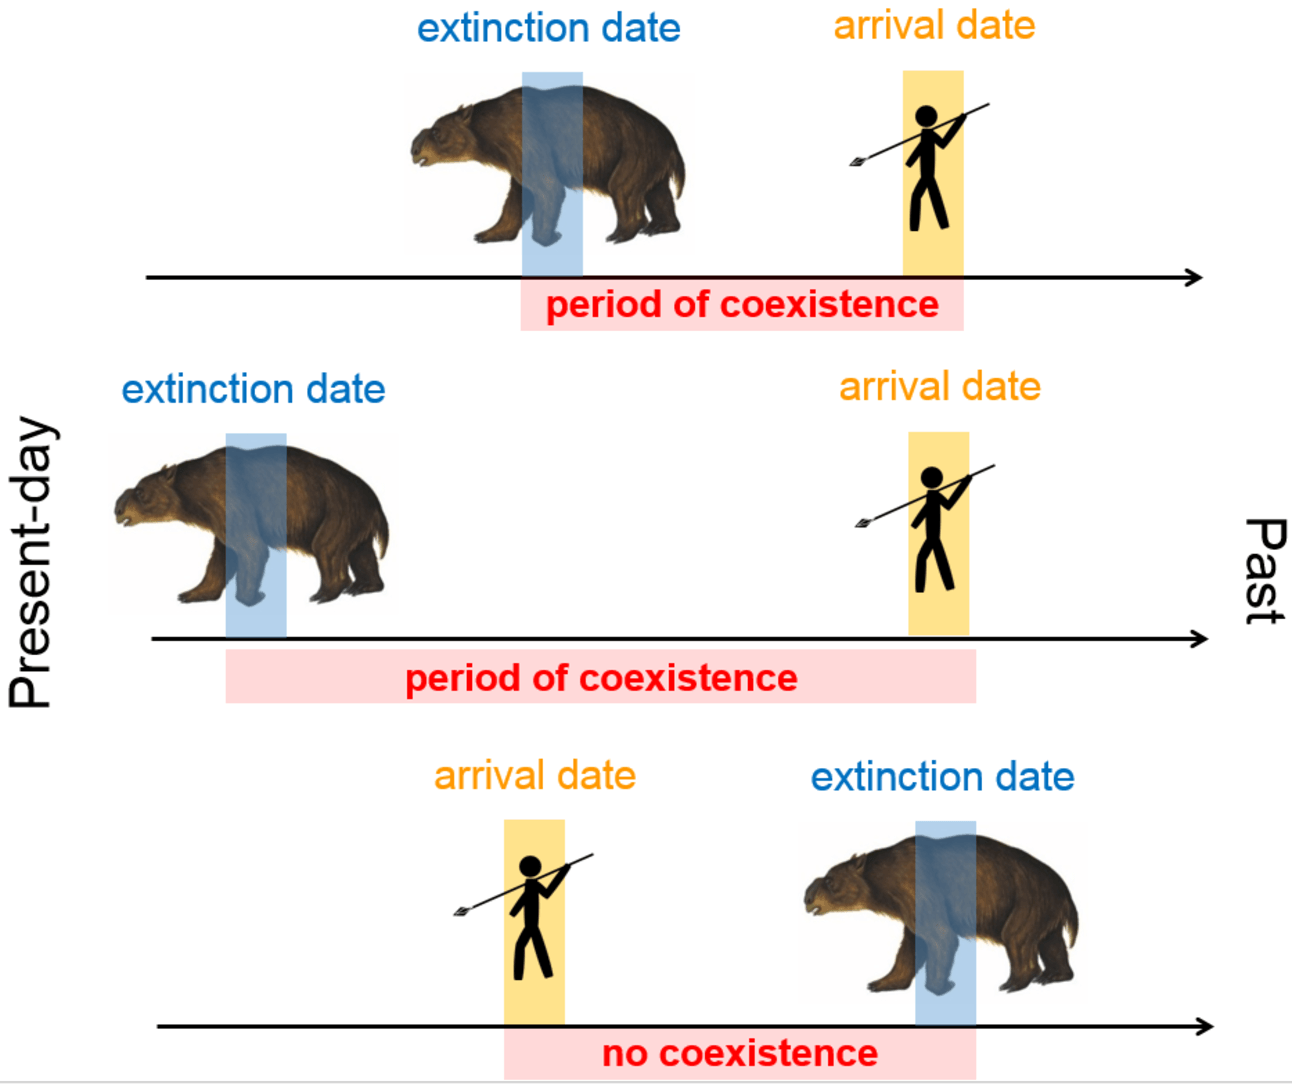 a case study of australia s megafauna Provided a continental breakdown of the late pleistocene megafauna extinctions and reported that humans were the main extinction driver in australia and north america, and climate was the main driver for europe, but that data were insufficient for making assessments for africa, asia and south america.